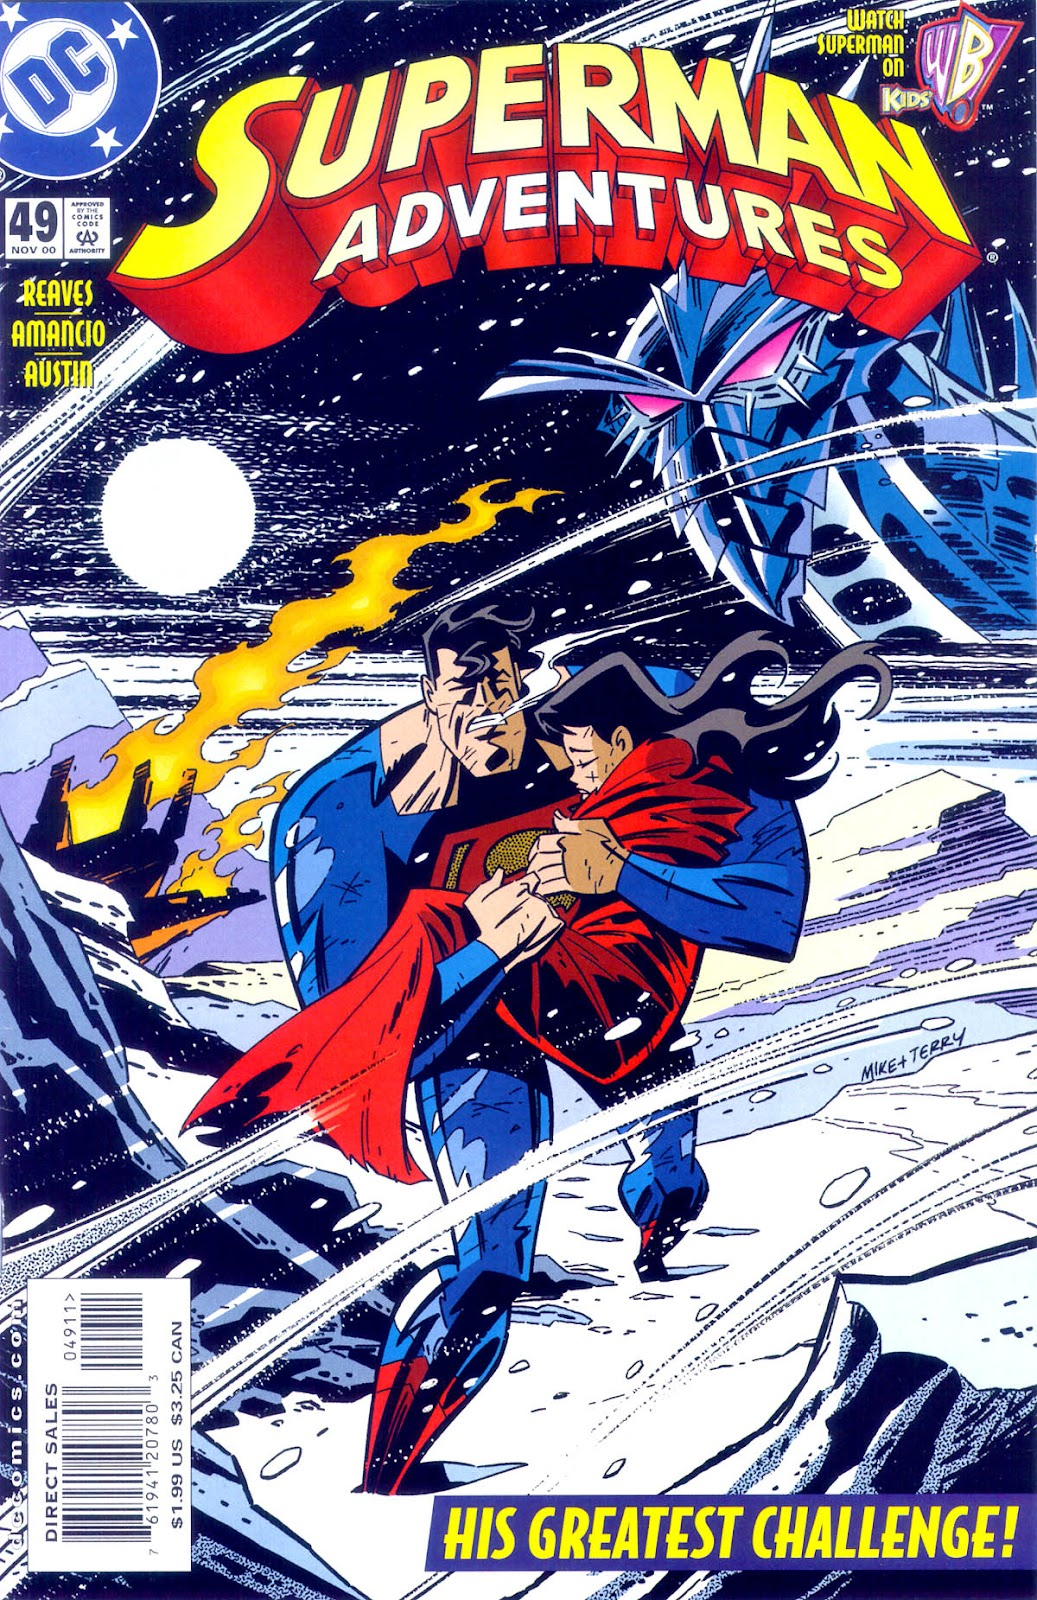 Superman Adventure (1996-2002) issue 49 - Page 1